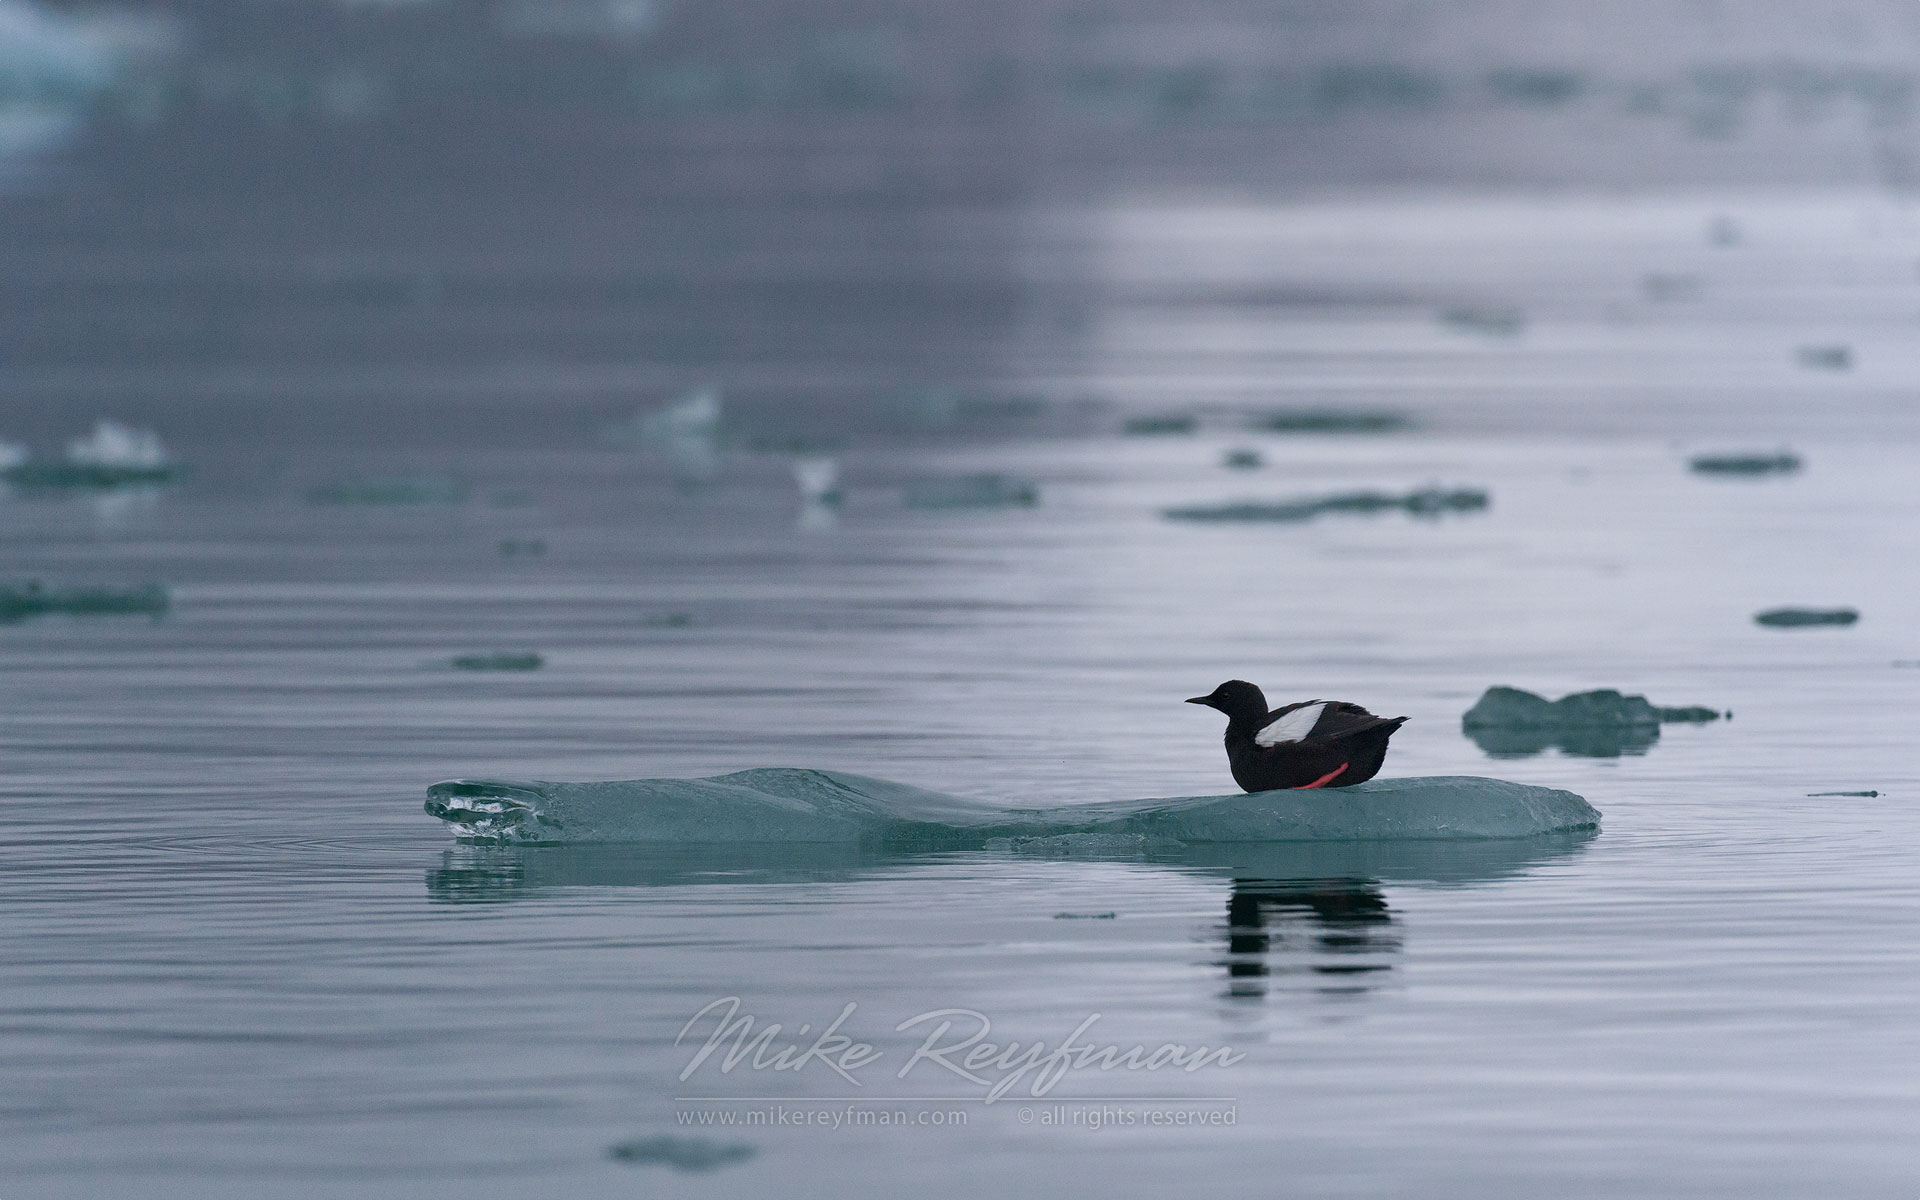 Black Guillemot or Tystie (Cepphus grylle). Spitsbergen, Svalbard, Norway. - Wildlife-Svalbard-Spitsbergen-Norway - Mike Reyfman Photography